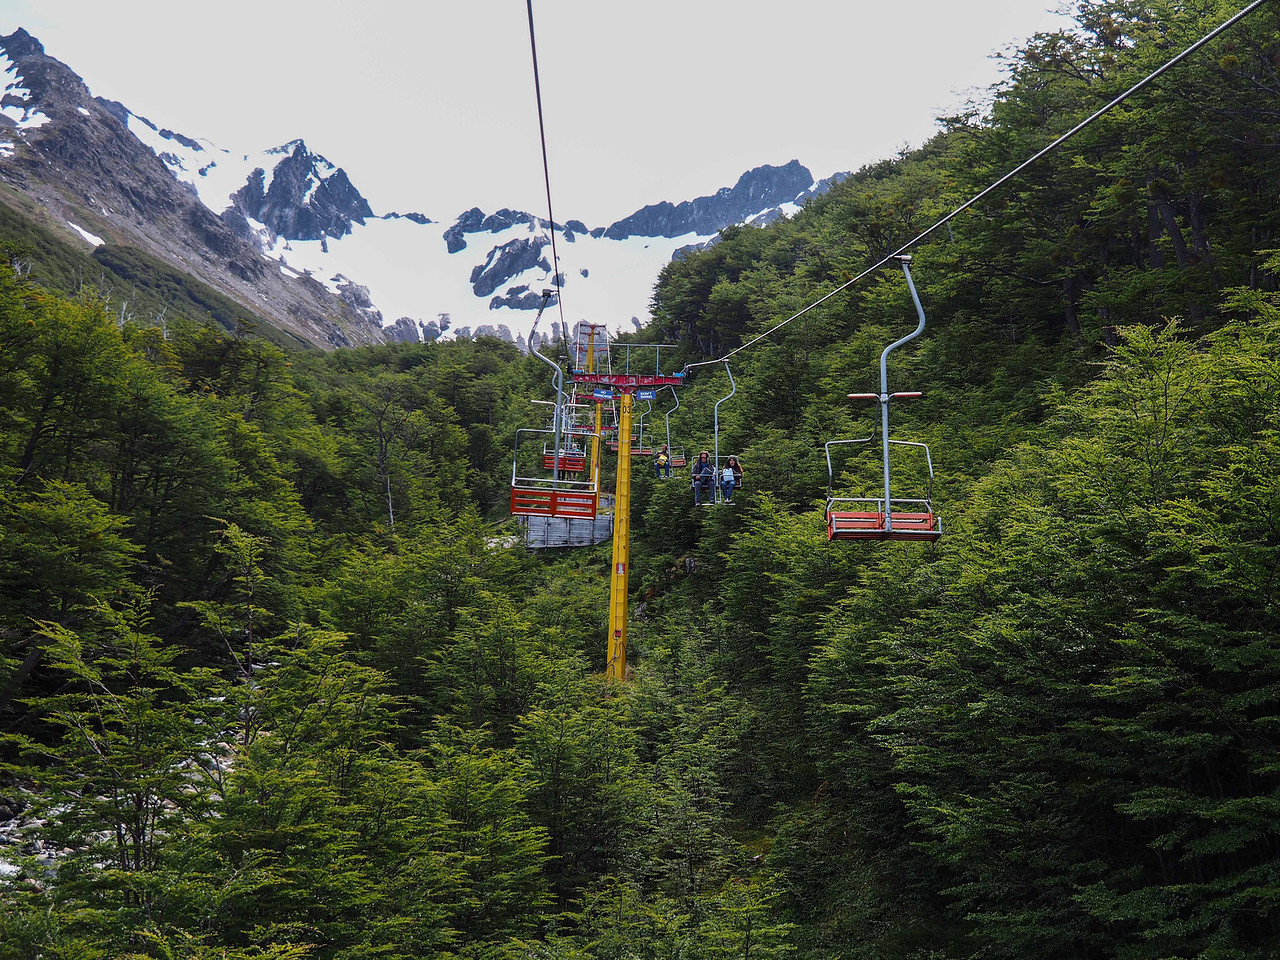 Chairlift to glacier and snow fields, Ushuaia